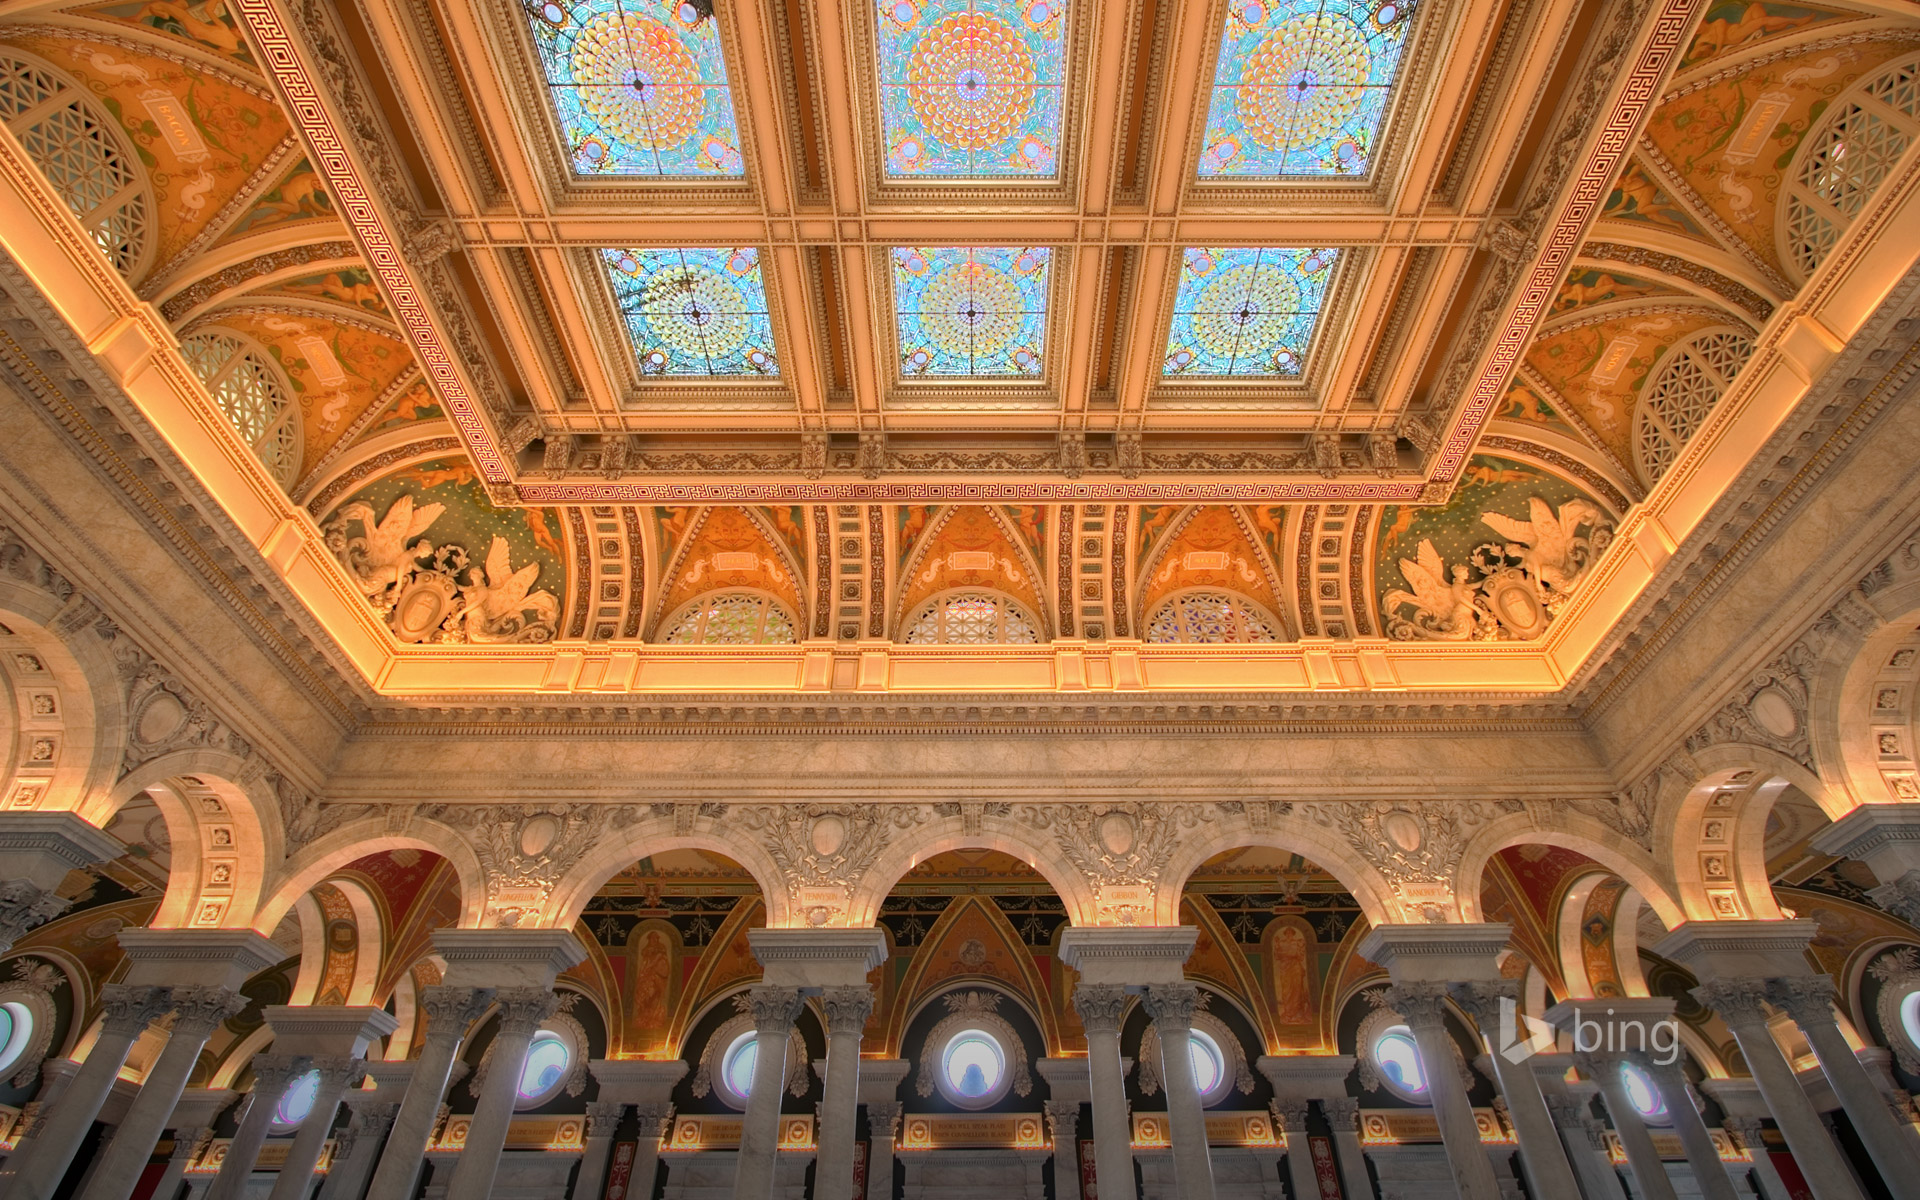 Entrance hall to the main reading room at the Library of Congress, Washington, D.C.